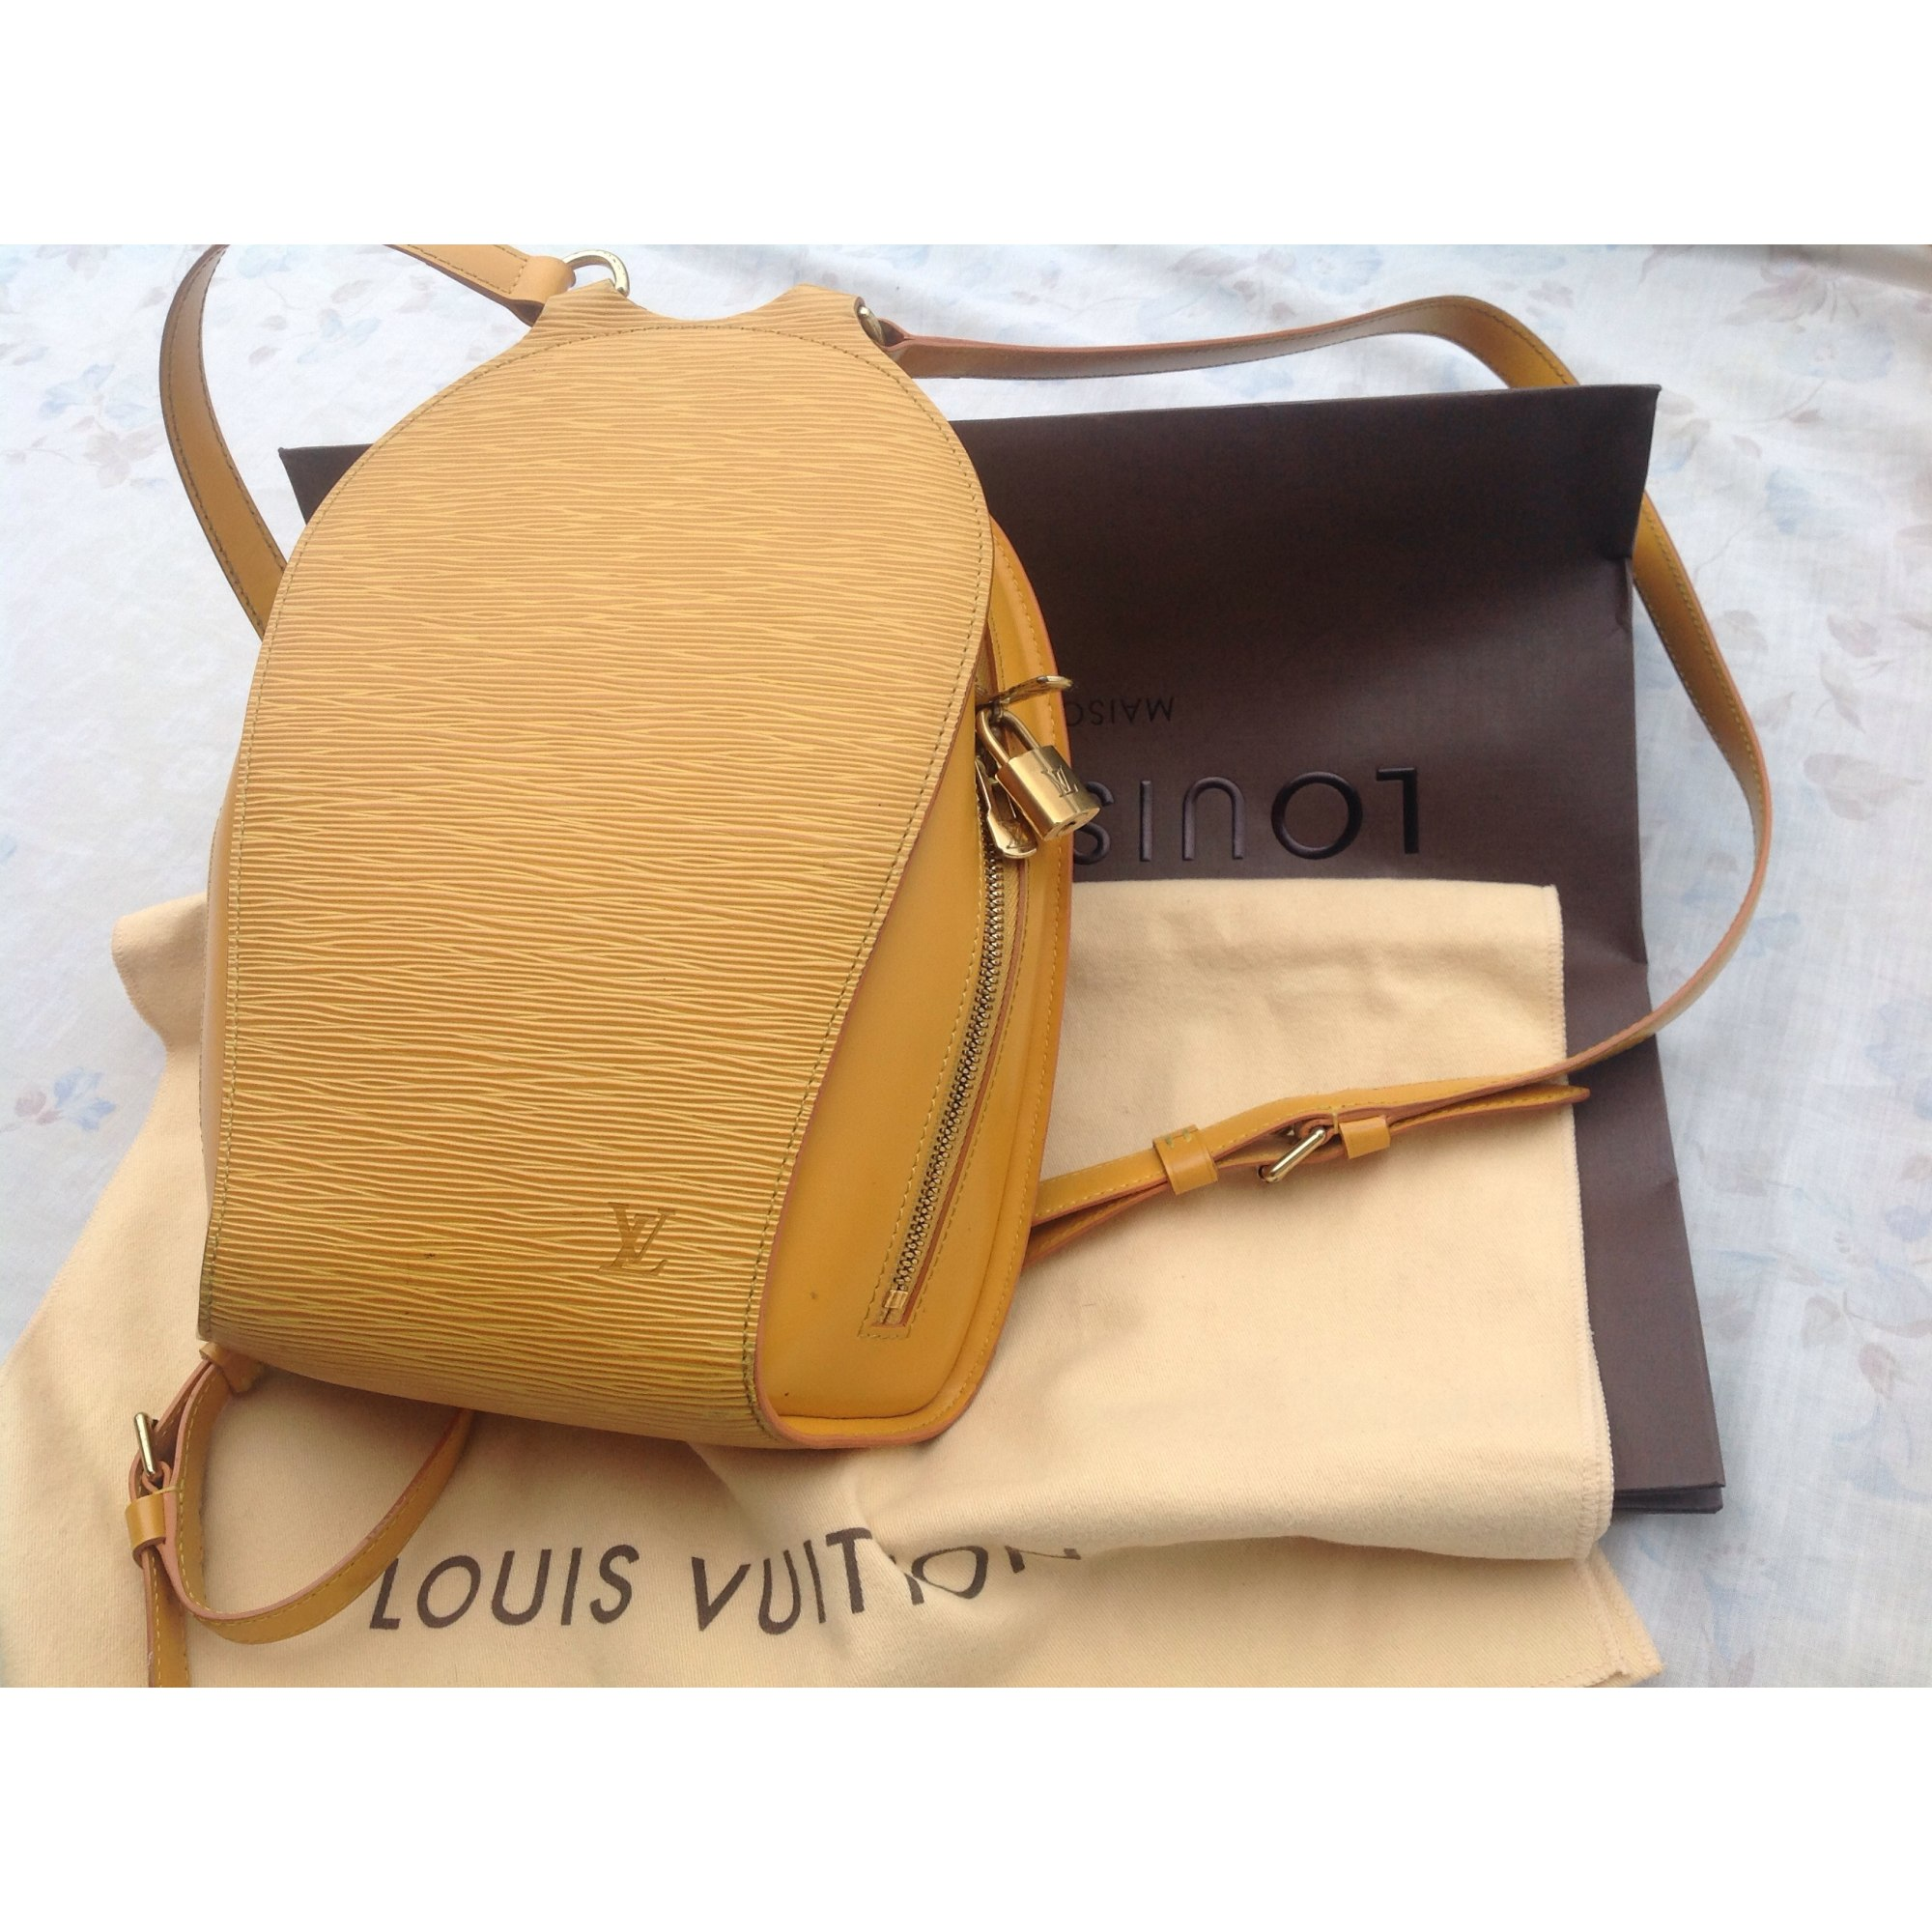 Sac à dos LOUIS VUITTON jaune vendu par Shopname665295 - 2547869 0bd4fcc23e0